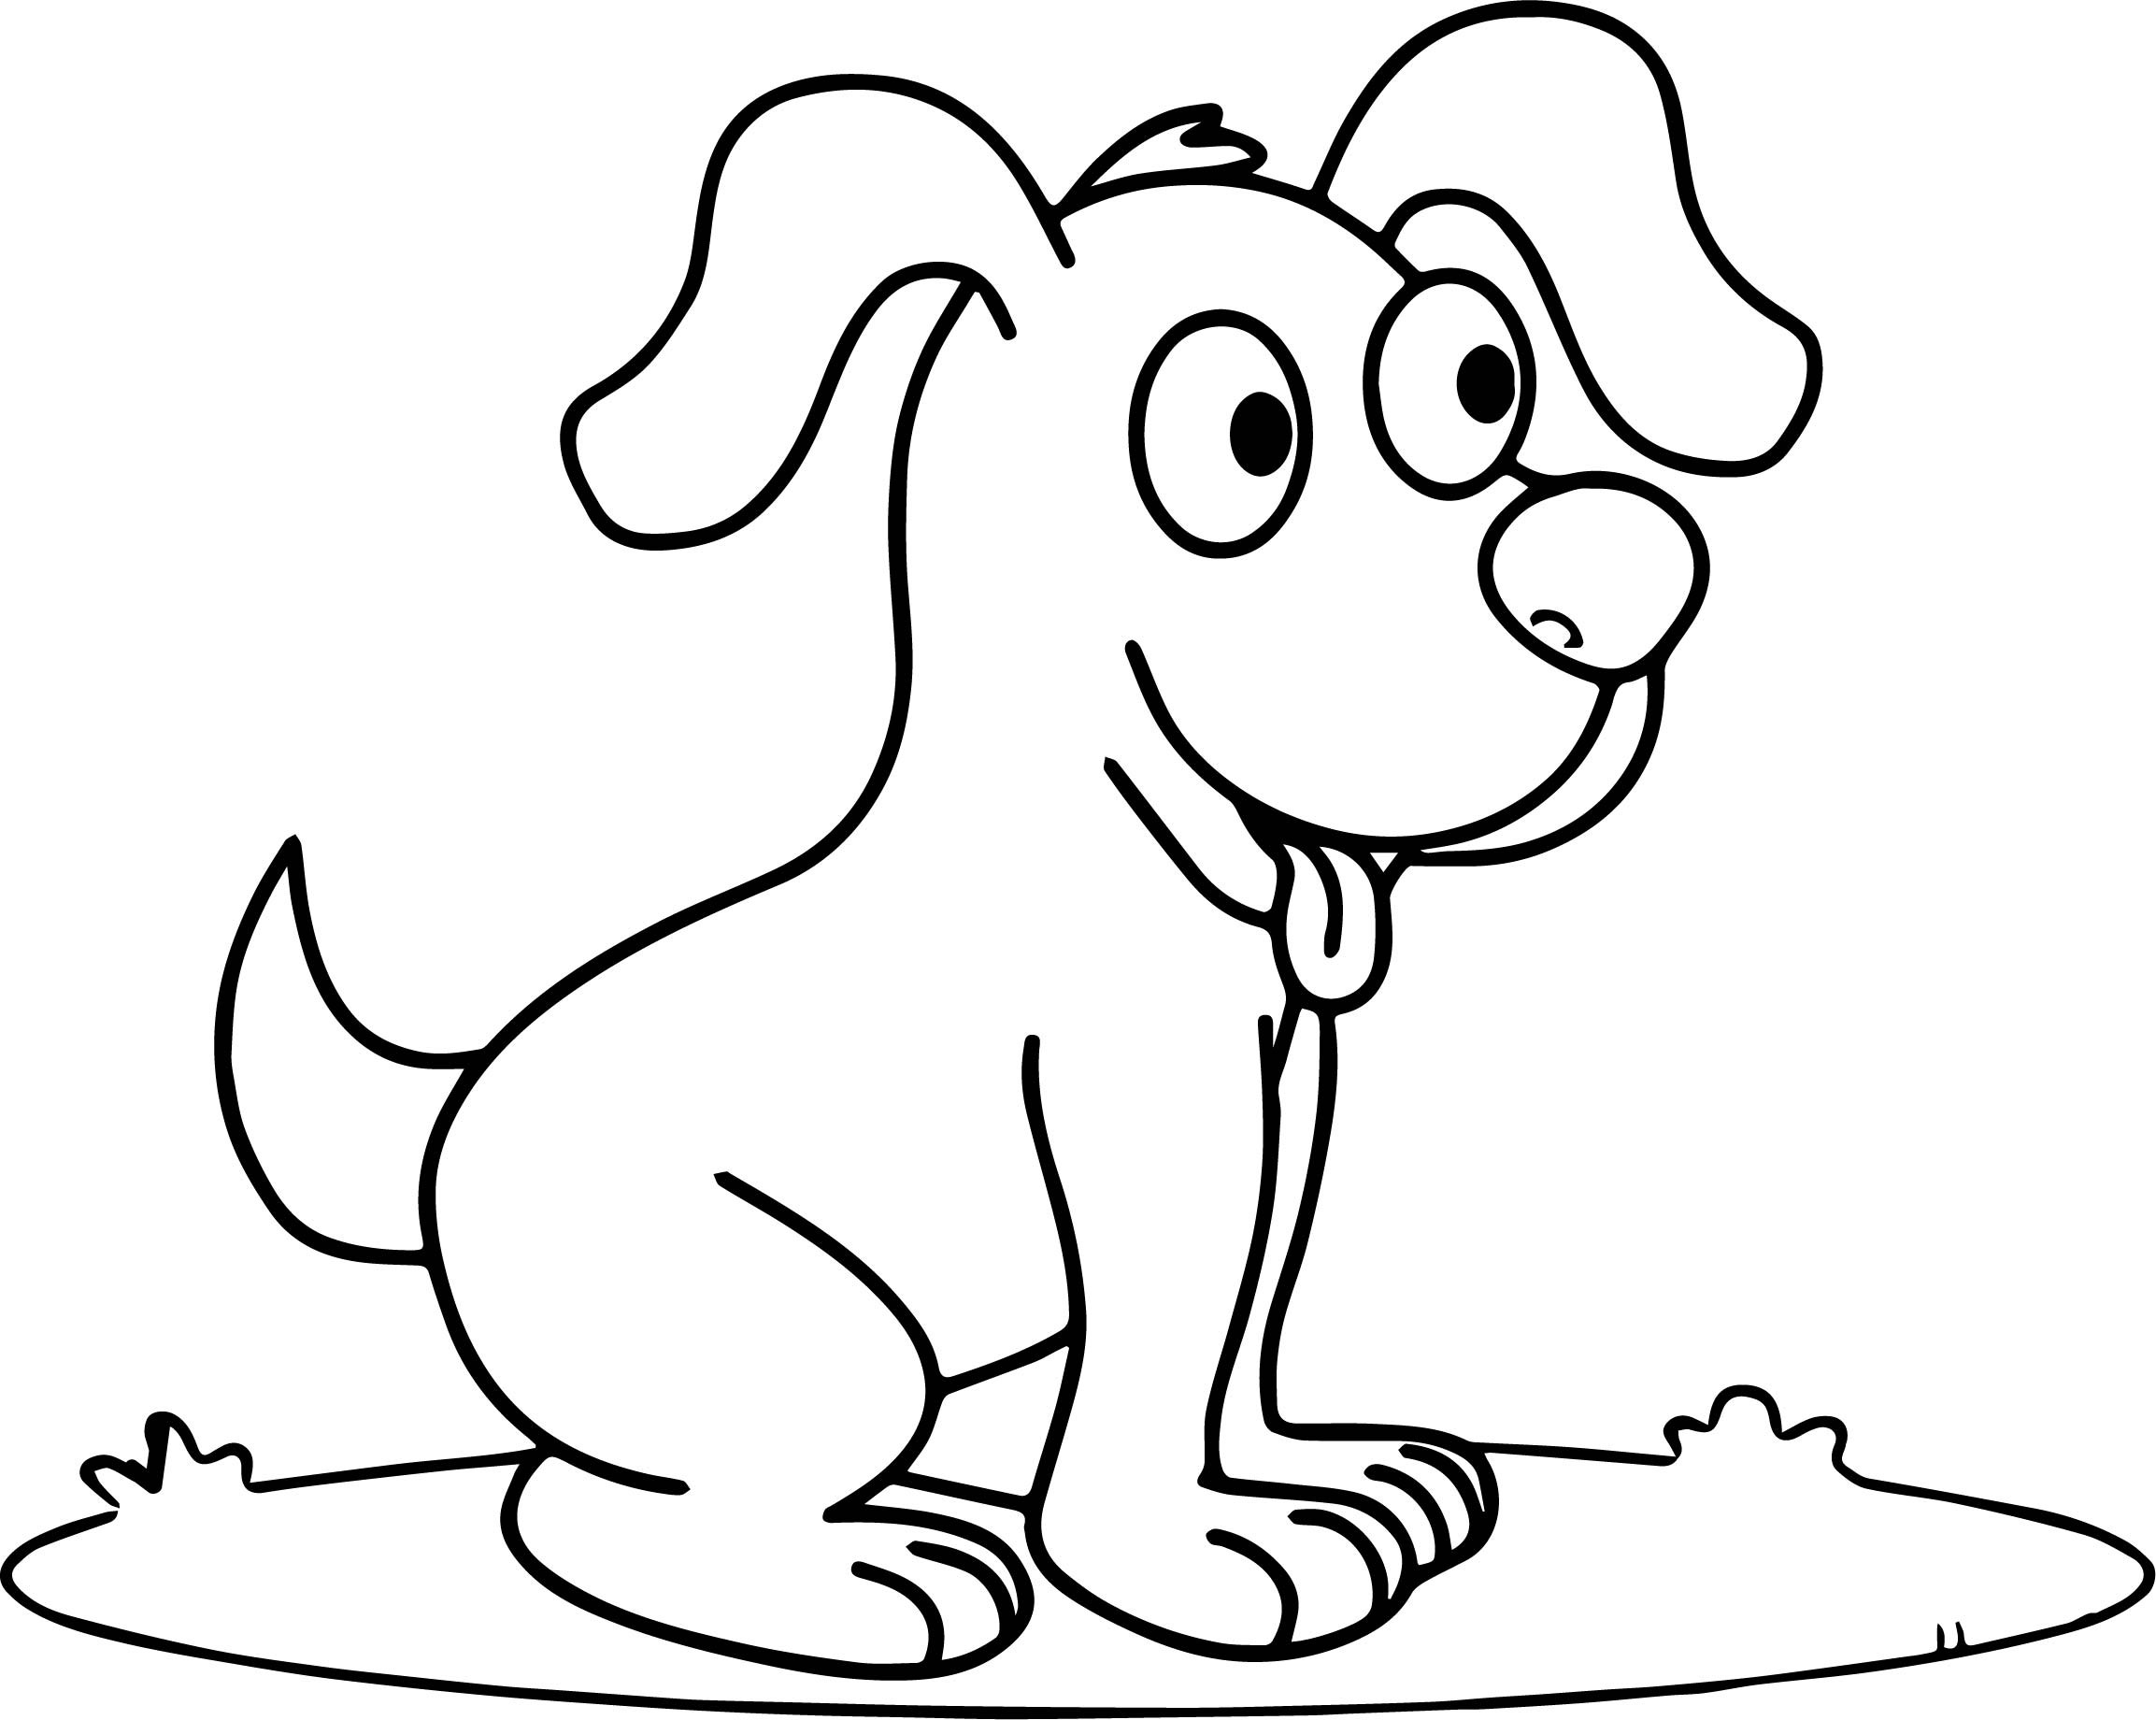 Newfoundland Dog Coloring Page At Getcolorings